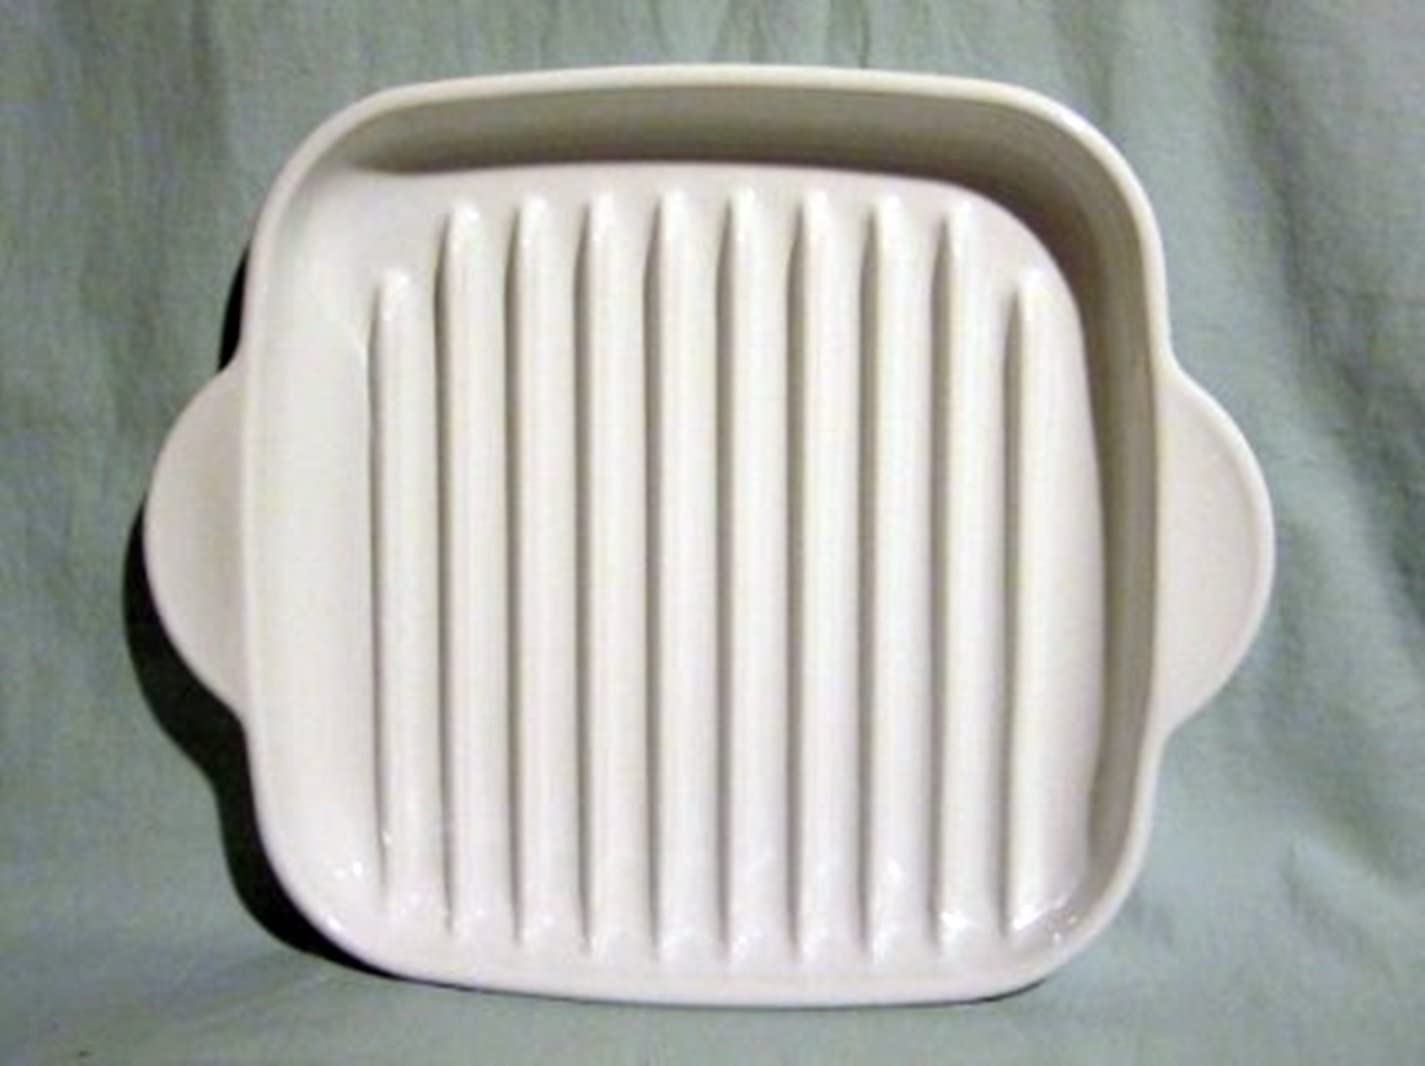 CORNING WARE BACON/GRILL BROWNING RACK MICROWAVE/OVEN MODEL # MR-3